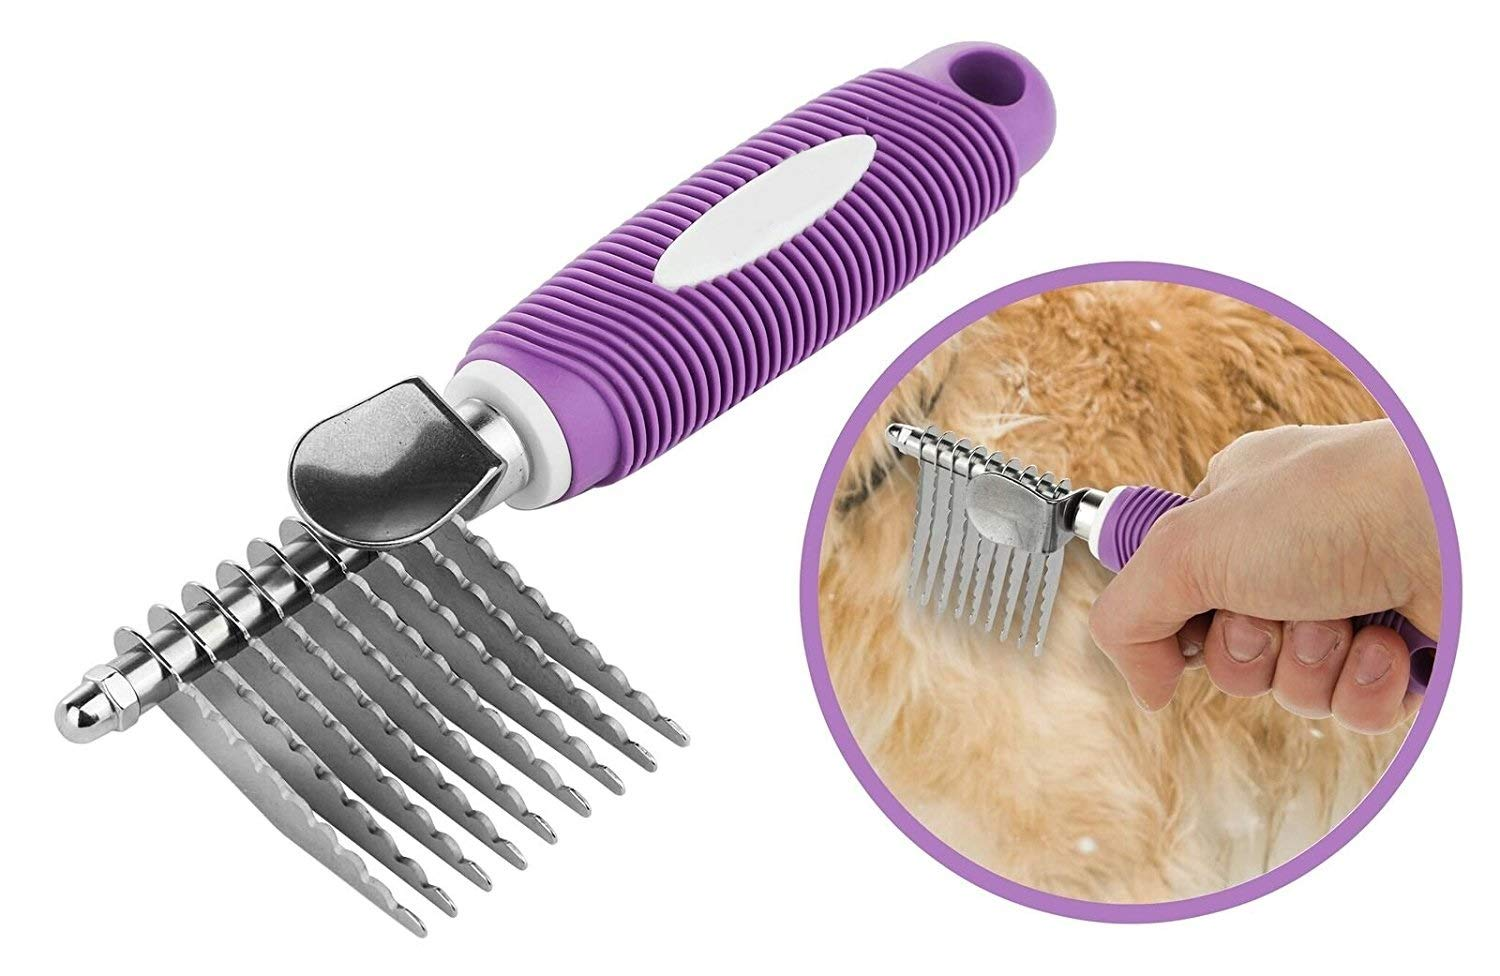 V.JUST Poodle Pet Dematting Fur Rake Comb Brush Tool Safety Blades for Detangling Matted Or Knotted Undercoat Hair, Safe Grooming Accessories